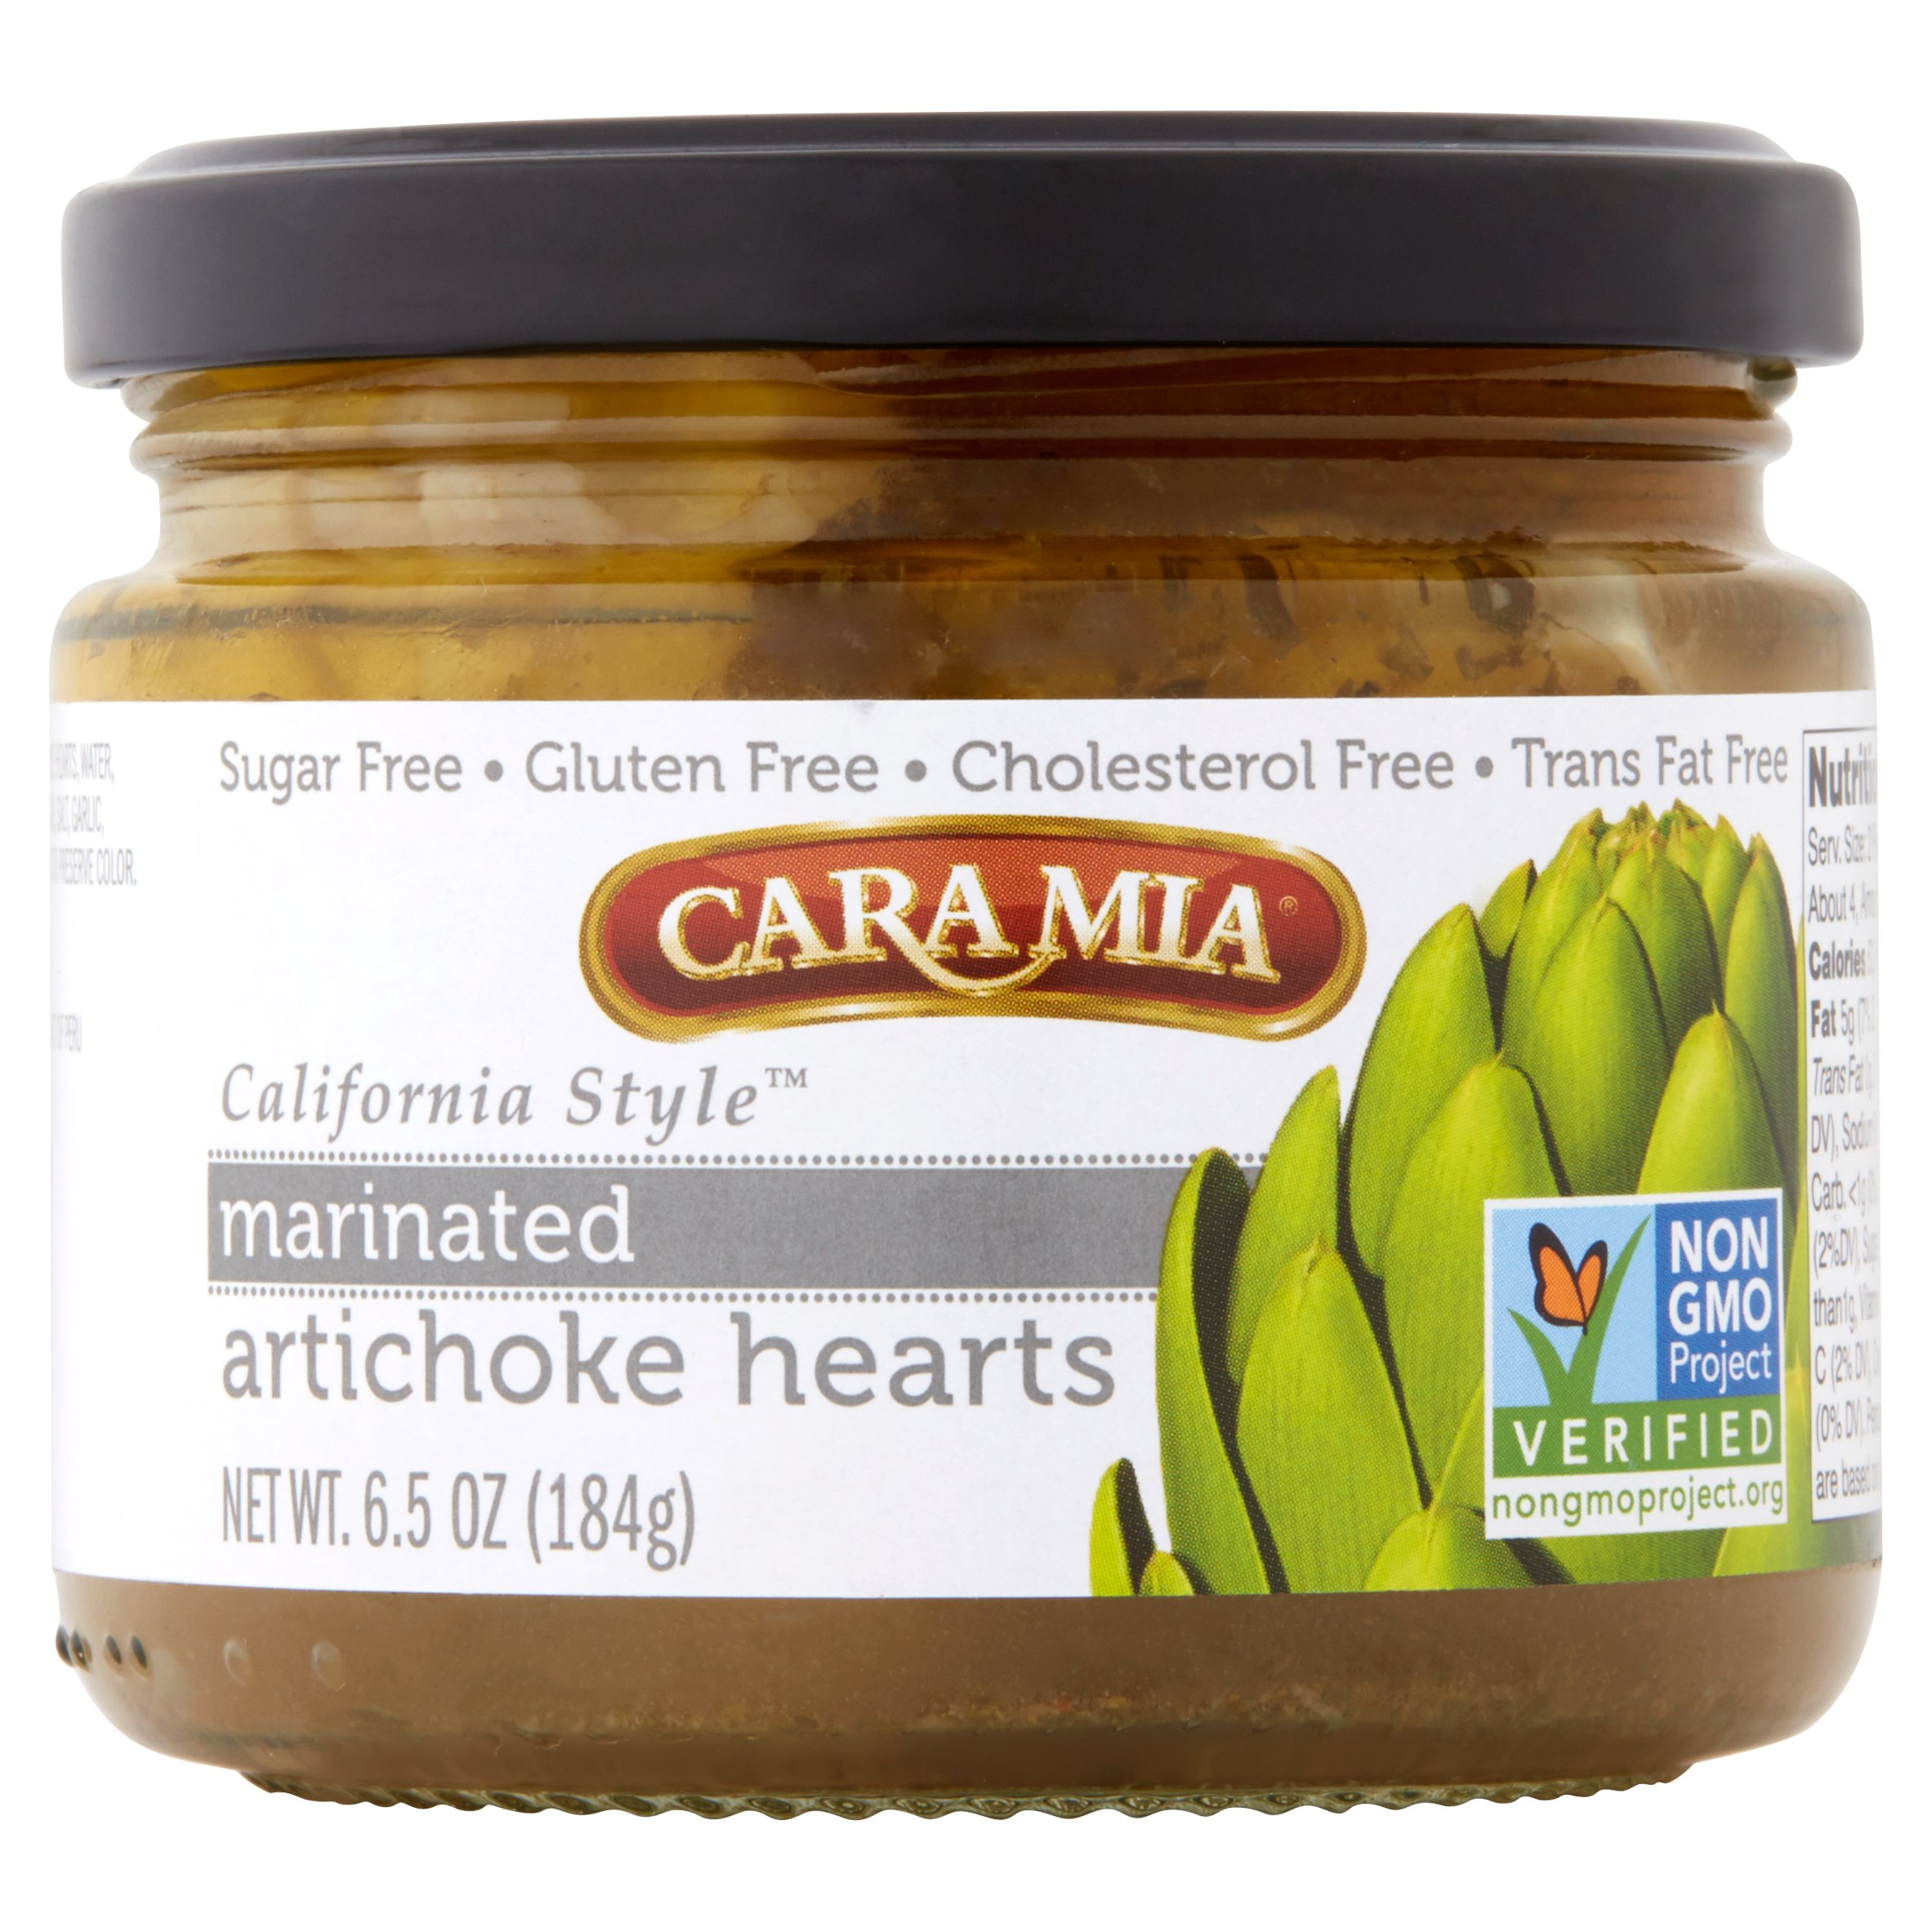 Cara Mia California Style Marinated Artichoke Hearts, 6.5 oz by Cara Mia Products